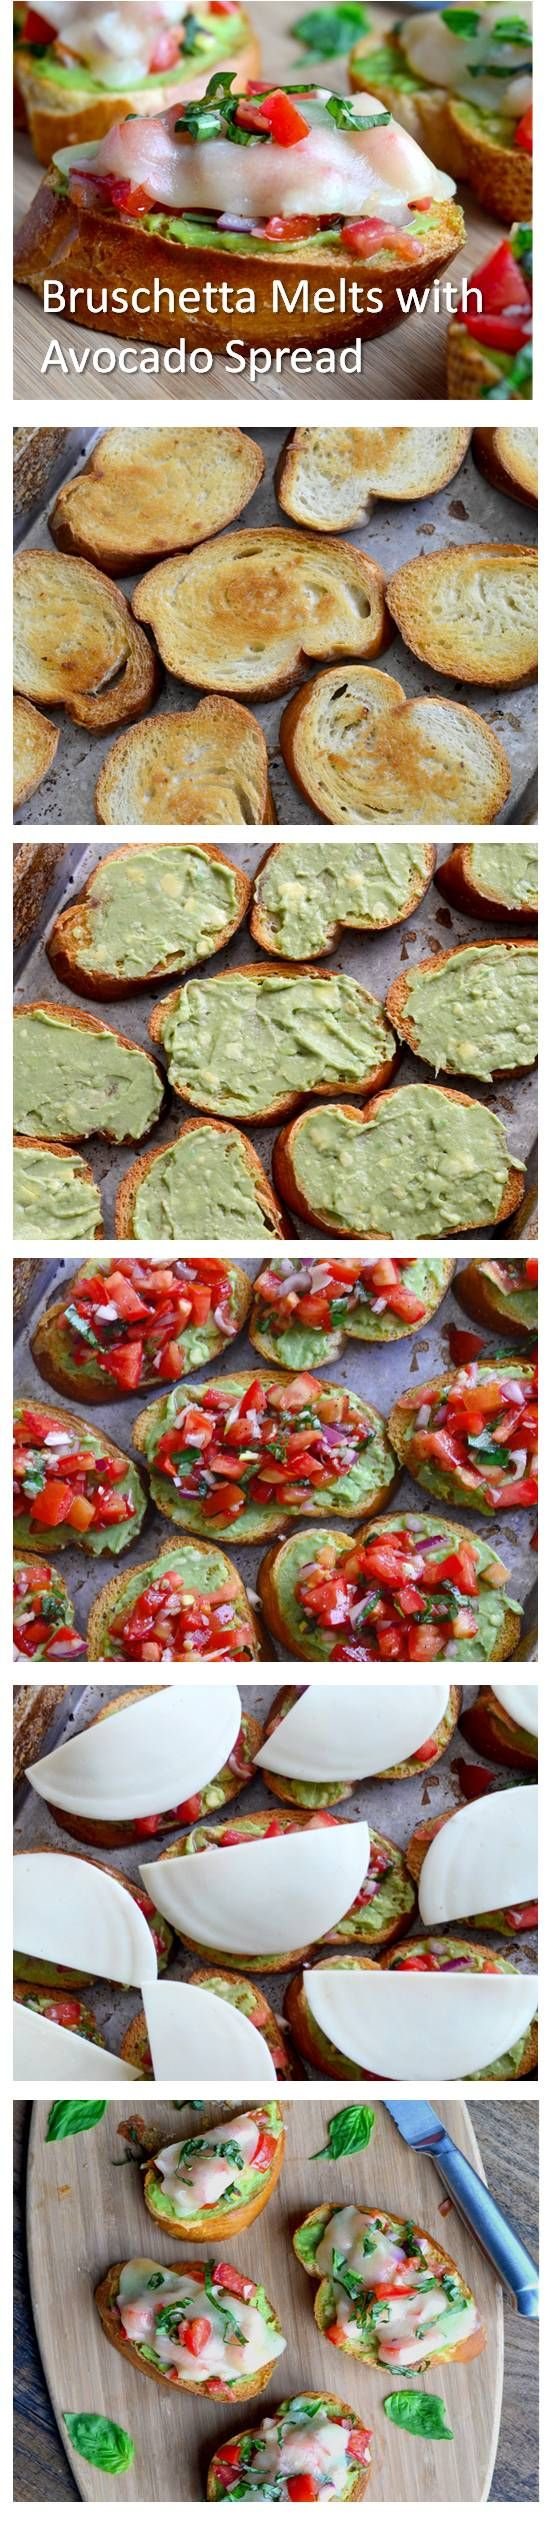 Italian Bruschetta Provolone Melts with Avocado Spread | The Spice Kit Recipes (thespicekitrecipes.com)